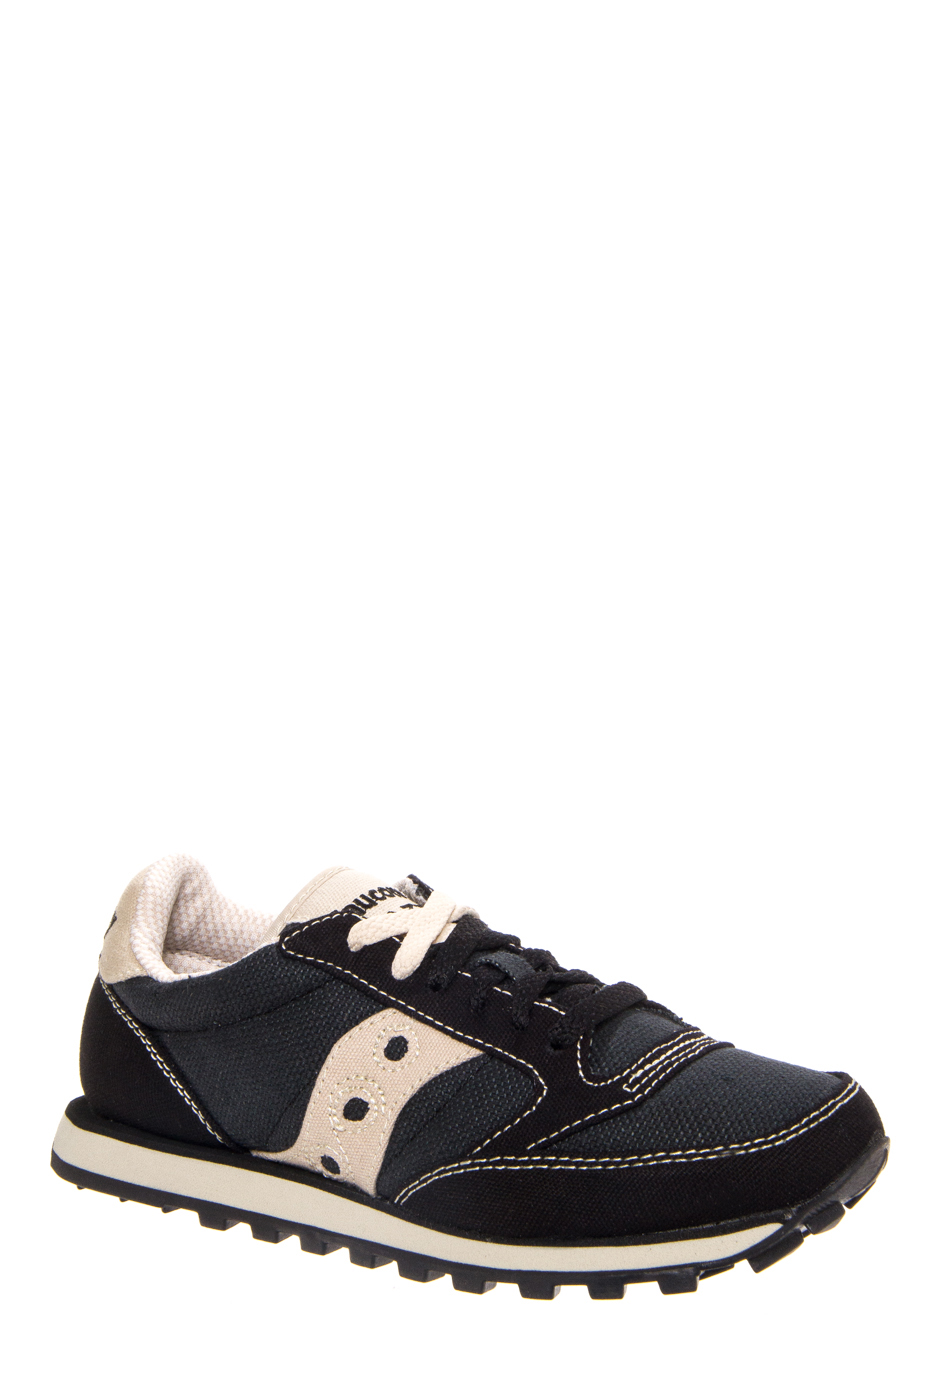 Saucony Jazz Low Pro Vegan Sneakers - Black / Oatmeal